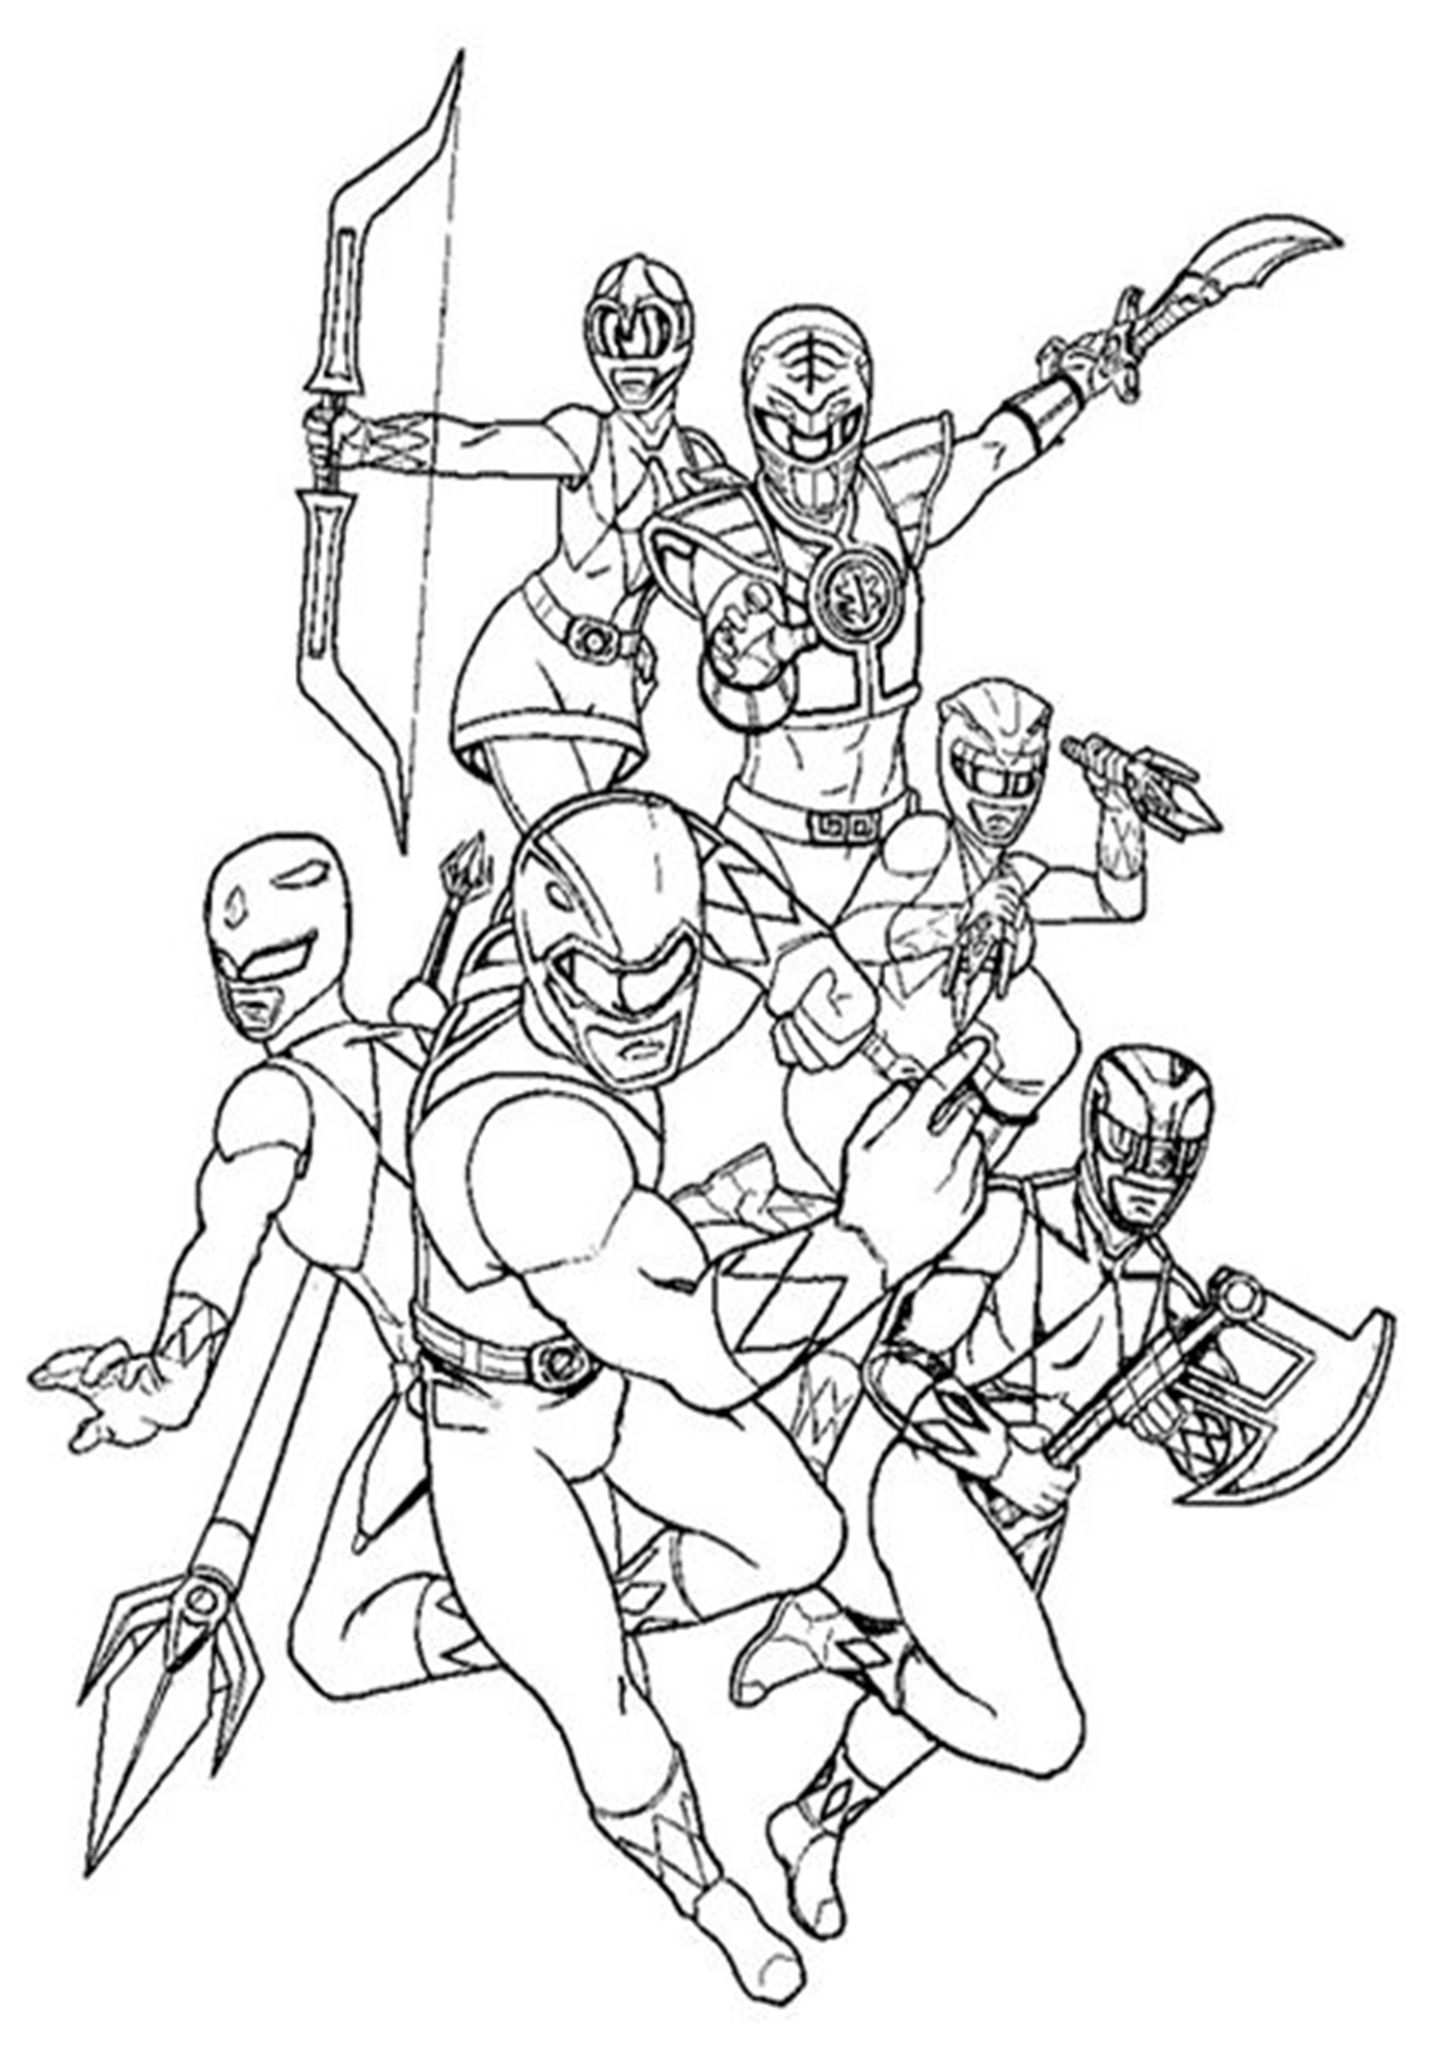 power rangers movie coloring pages power rangers coloring pages pages coloring movie power rangers